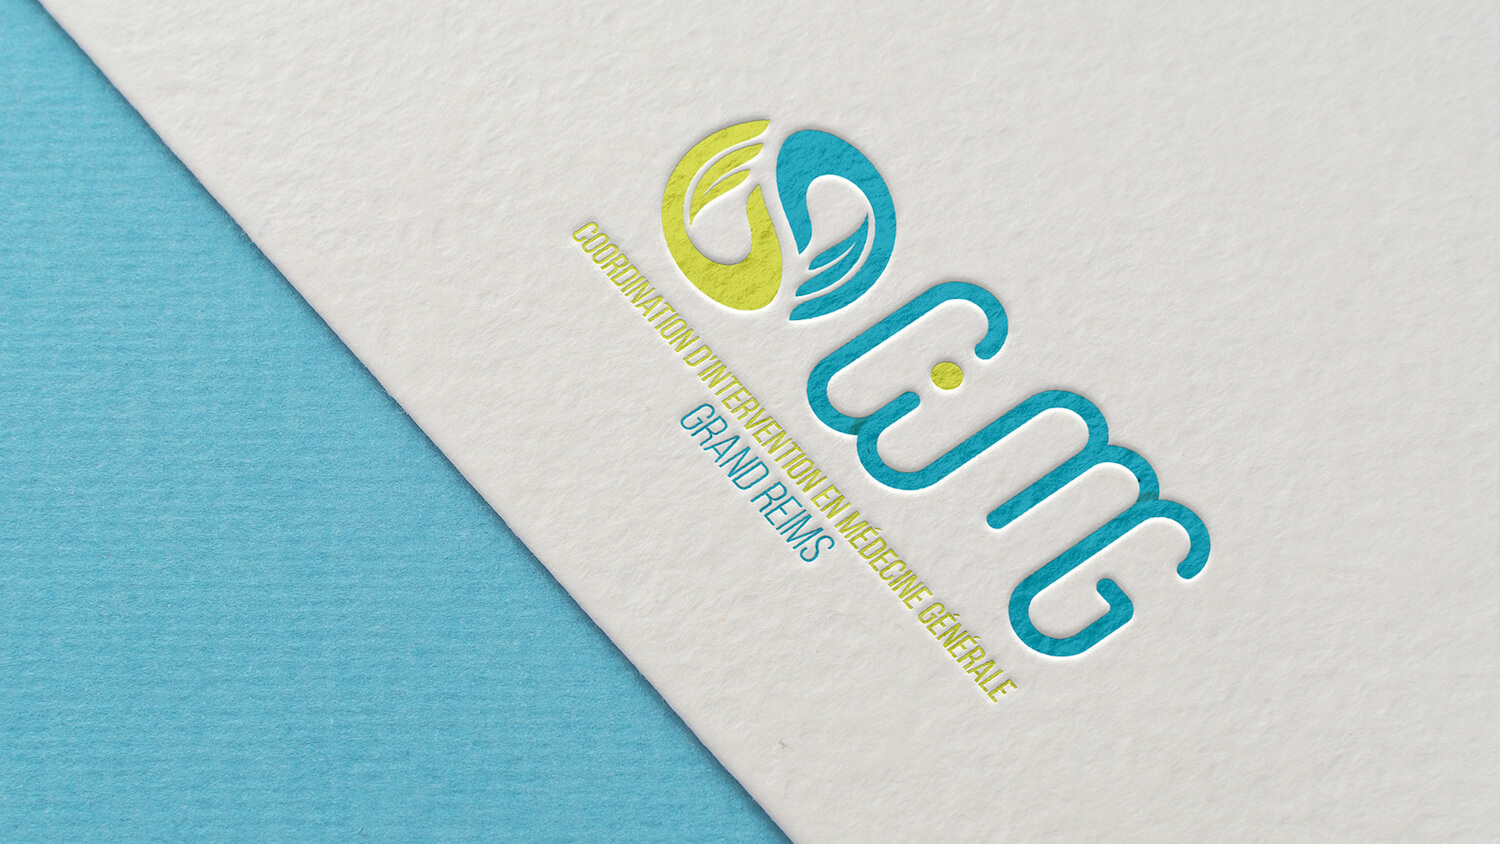 CIMG Mockup4 sd CIMG Grand Reims   Hachetag agence de communication reims et paris